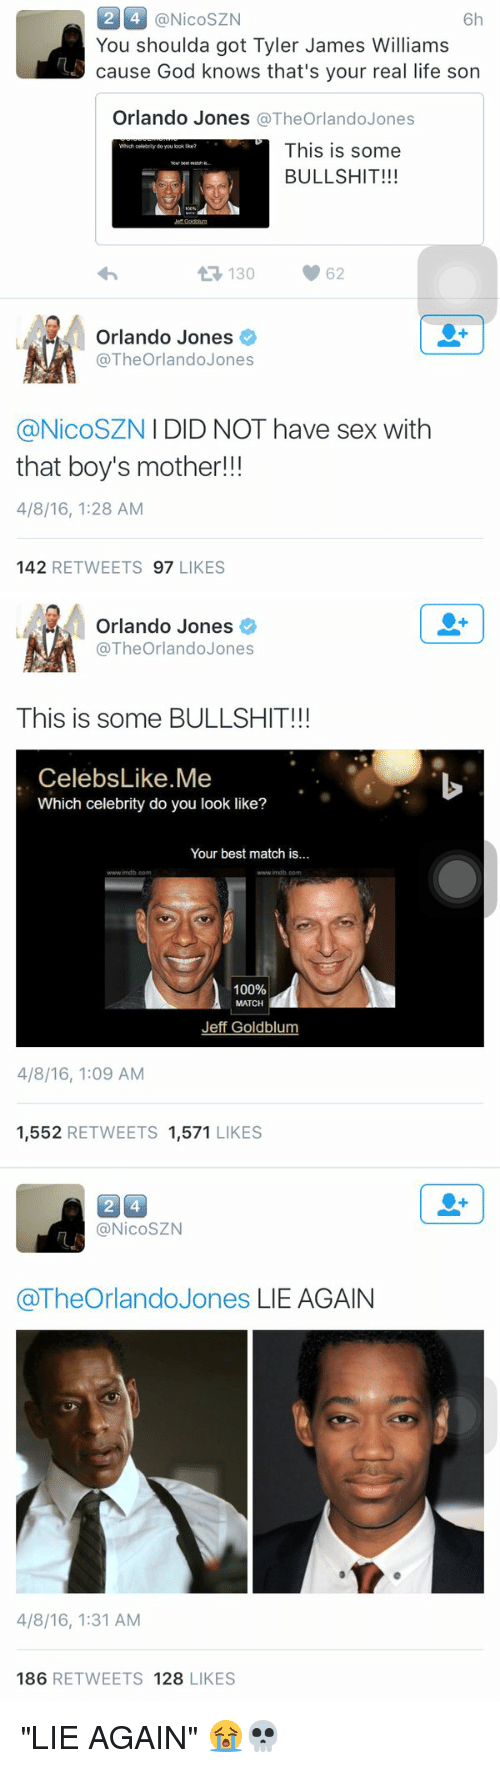 """Jeff Goldblums: 2 4 @Nico SZN  6h  You shoulda got Tyler James Williams  cause God knows that's your real life son  Orlando Jones  The Orlando Jones  This is some  BULLSHIT!!!  t 130  62  Orlando Jones  The Orlando Jones  I DID NOT have sex with  @Nico SZN  that boy's mother!!!  4/8/16, 1:28 AM  142  RETWEETS 97  LIKES   Orlando Jones  The Orlando Jones  This is some BULLSHIT!!!  Celebs Like Me  Which celebrity do you look like?  Your best match is.  www indb com  100%  Jeff Goldblum  4/8/16, 1:09 AM  1.552  RETWEETS  1.571  LIKES   24  (a NicoSZN  @The Orlando Jones LIE AGAIN  4/8/16, 1:31 AM  186  RETWEETS 128  LIKES """"LIE AGAIN"""" 😭💀"""